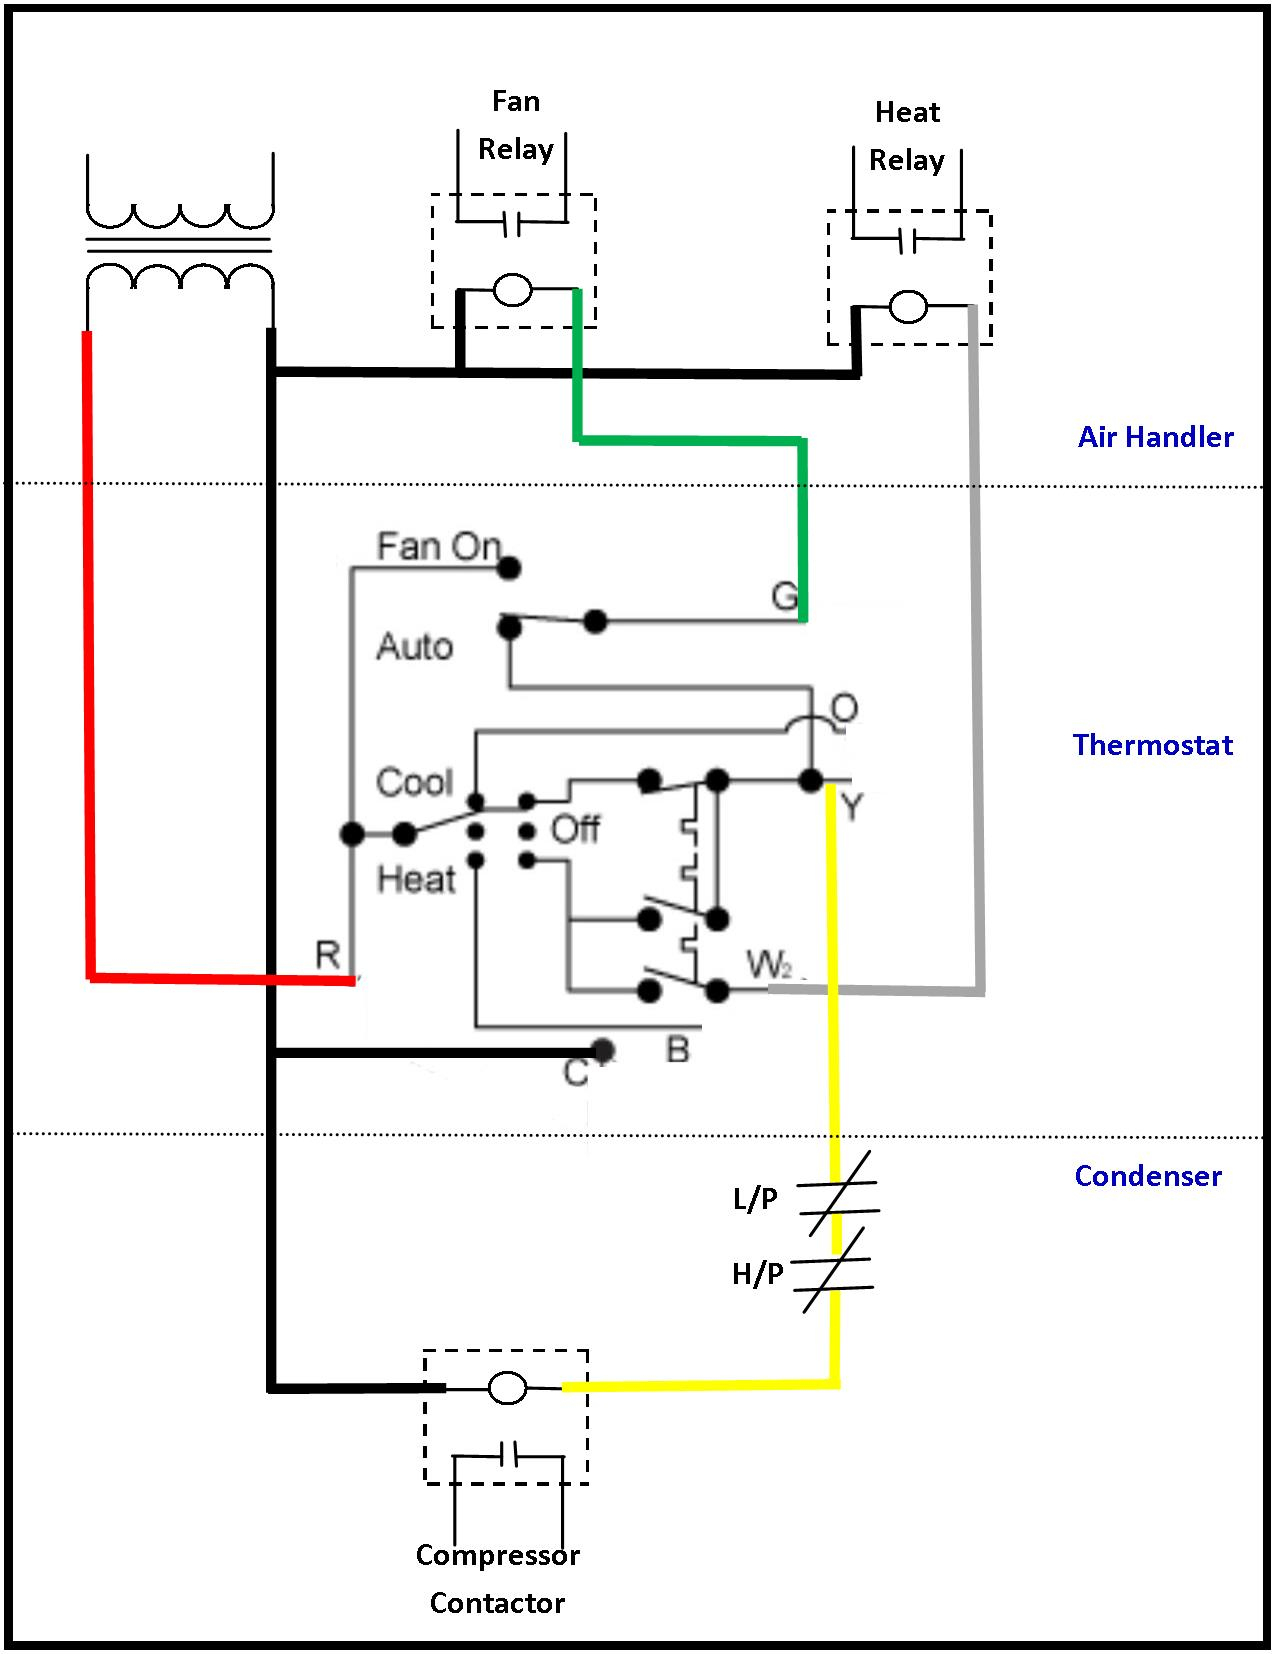 Hvac Blower Motor Relay Wiring Diagram | Wiring Diagram - Hvac Relay Wiring Diagram